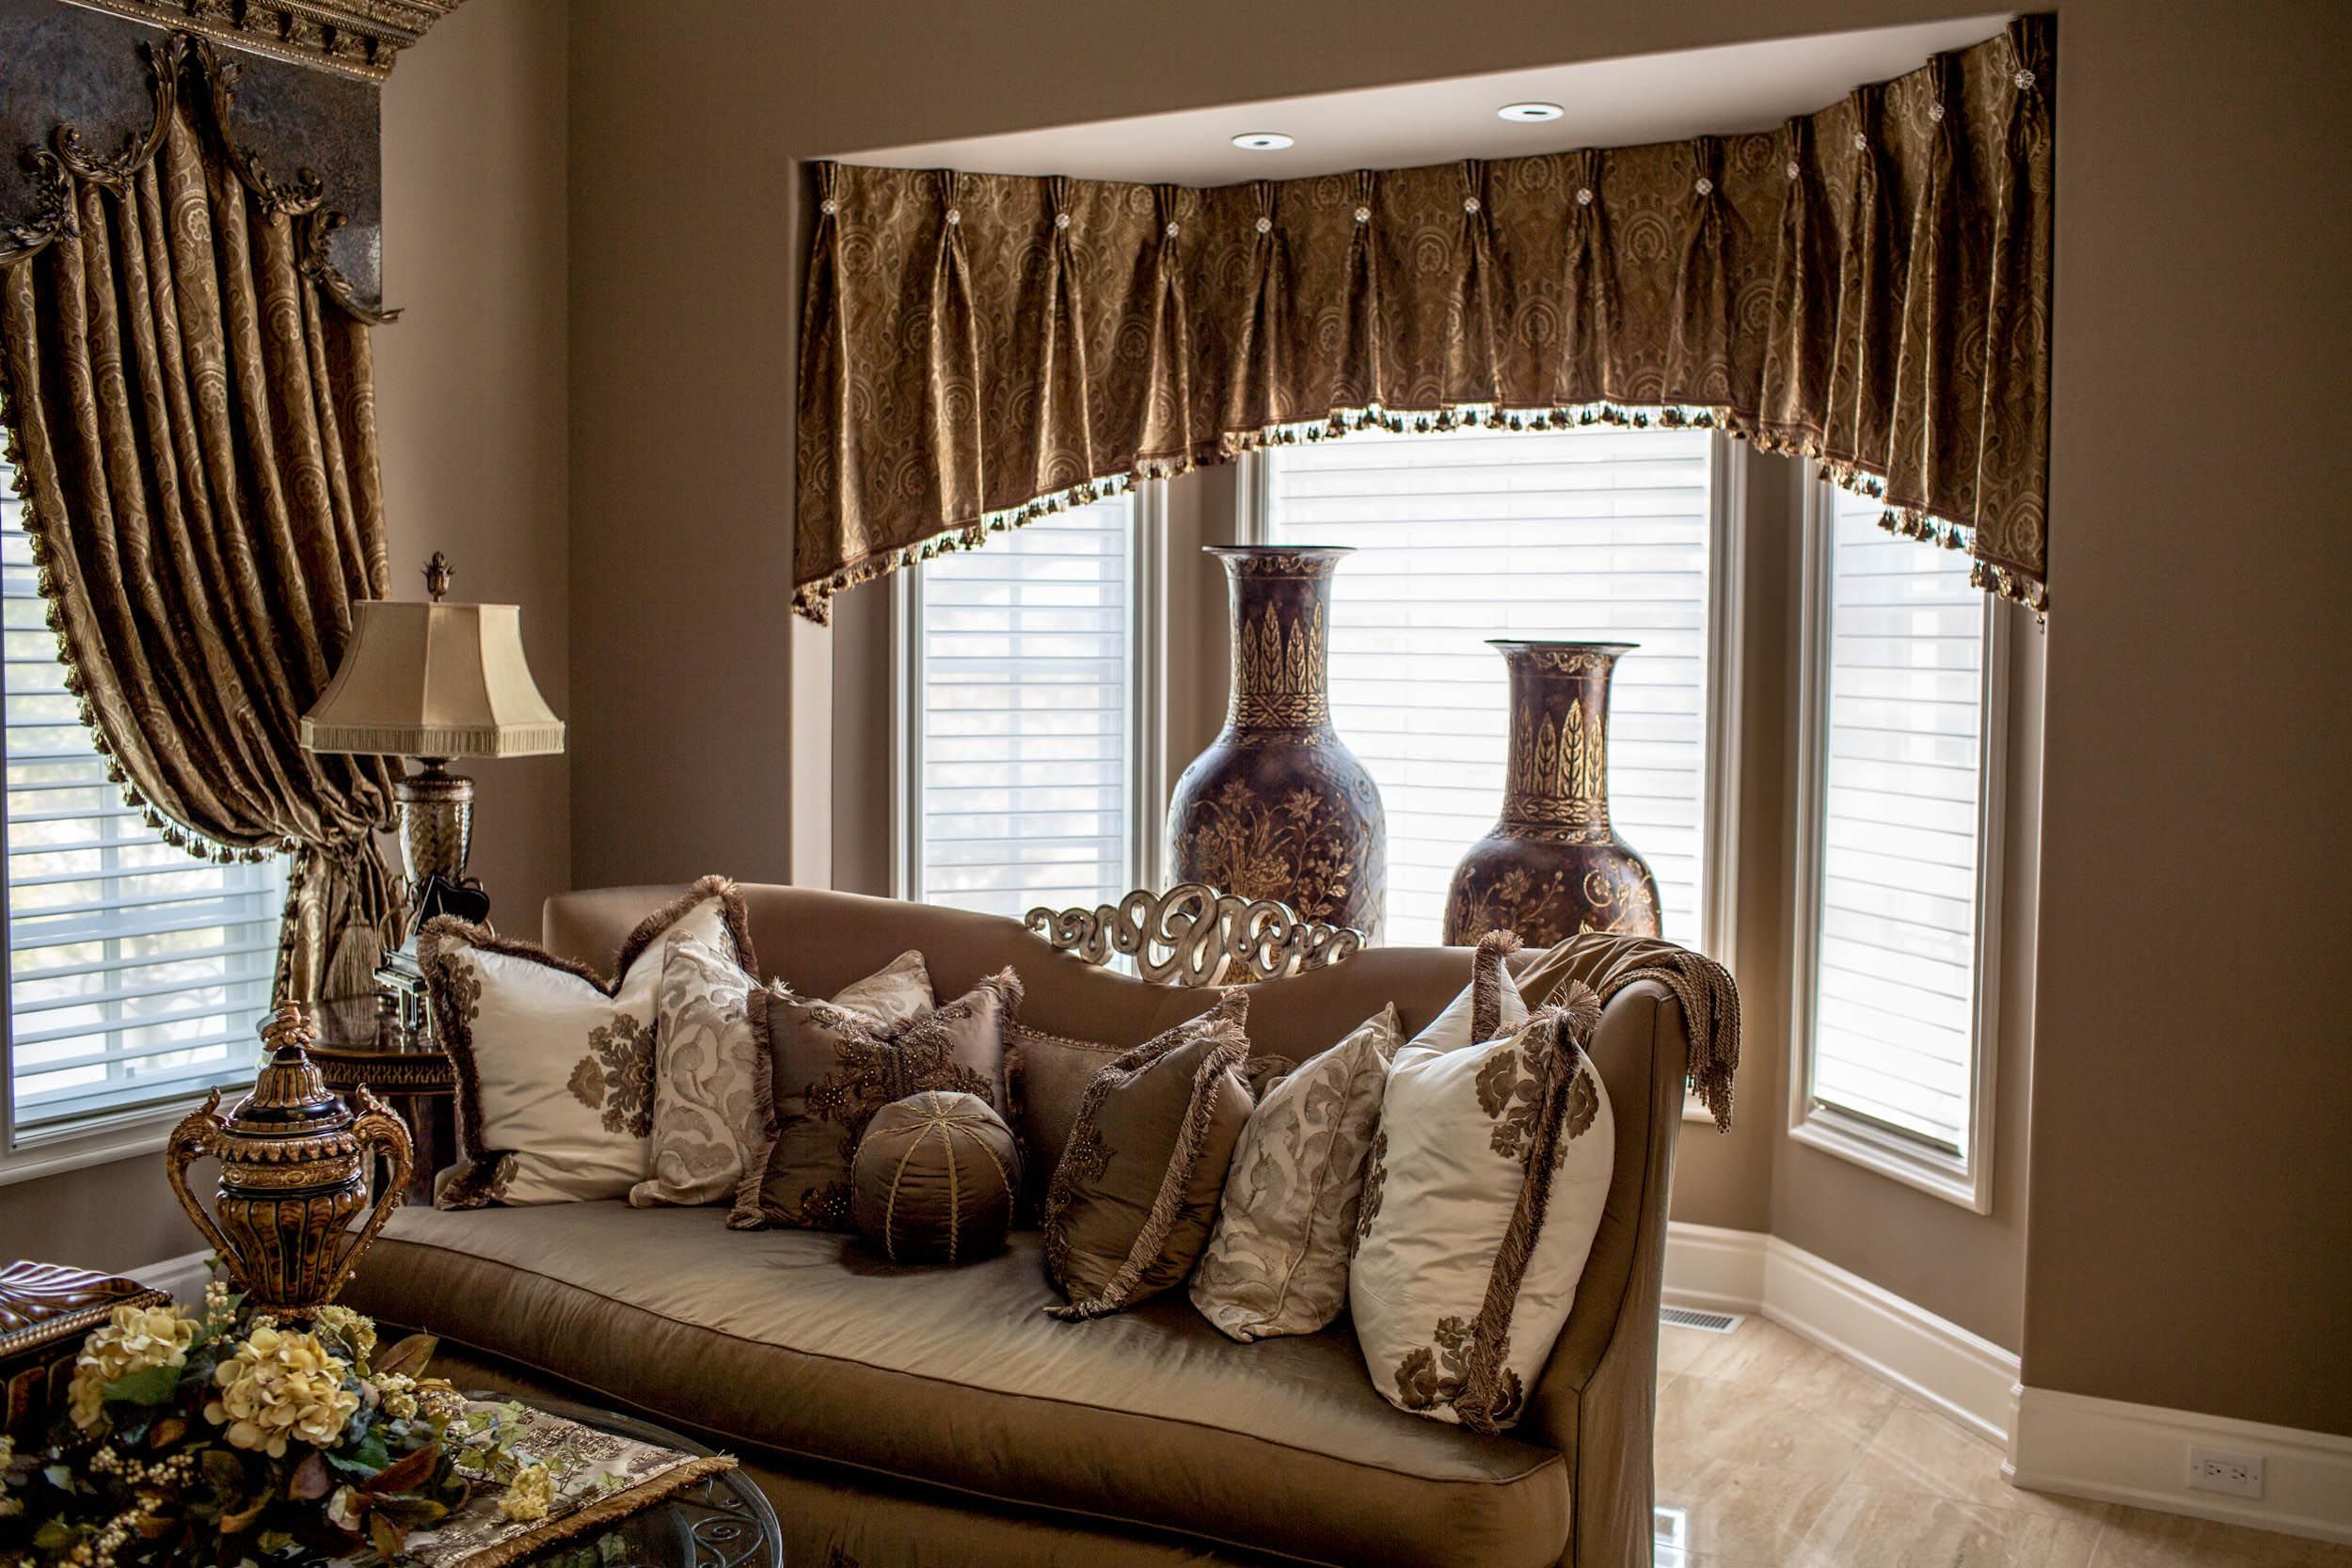 Fancy Valances For Living Room Window Treatments Living Room Living Room Windows Valances For Living Room